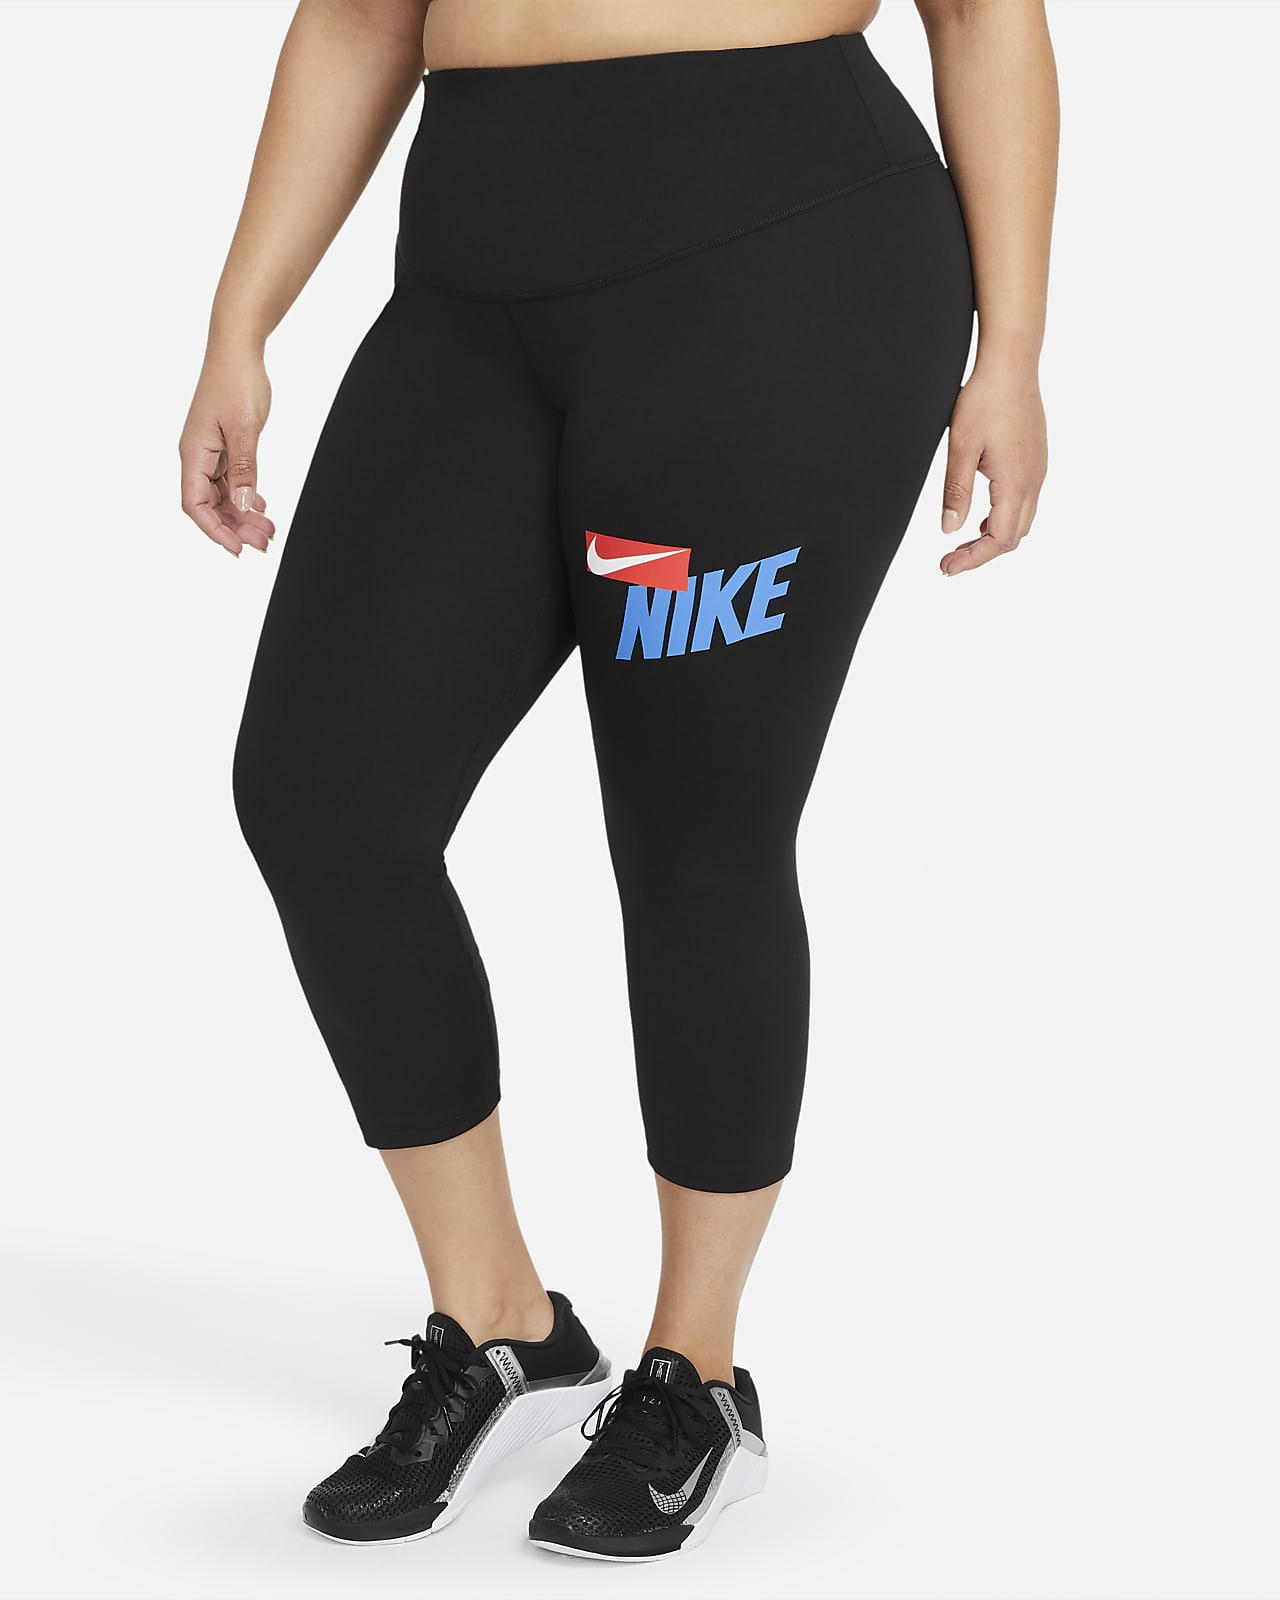 Nike One Women's Mid-Rise Cropped Graphic Leggings (Plus Size)